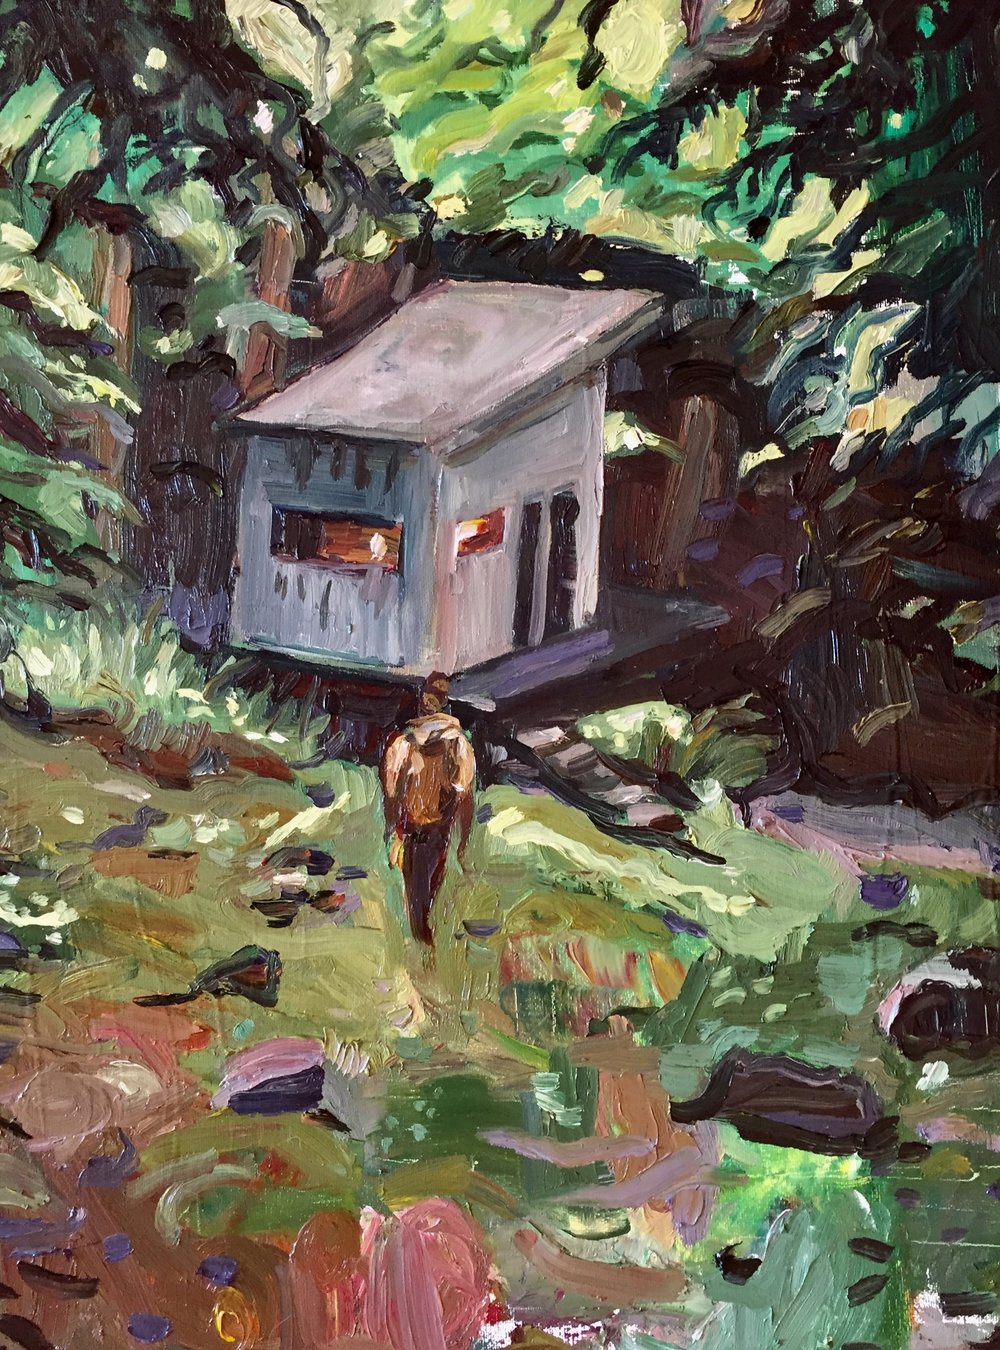 North Face Jacket, Damp Getaway, Oil on Canvas, 16/24""